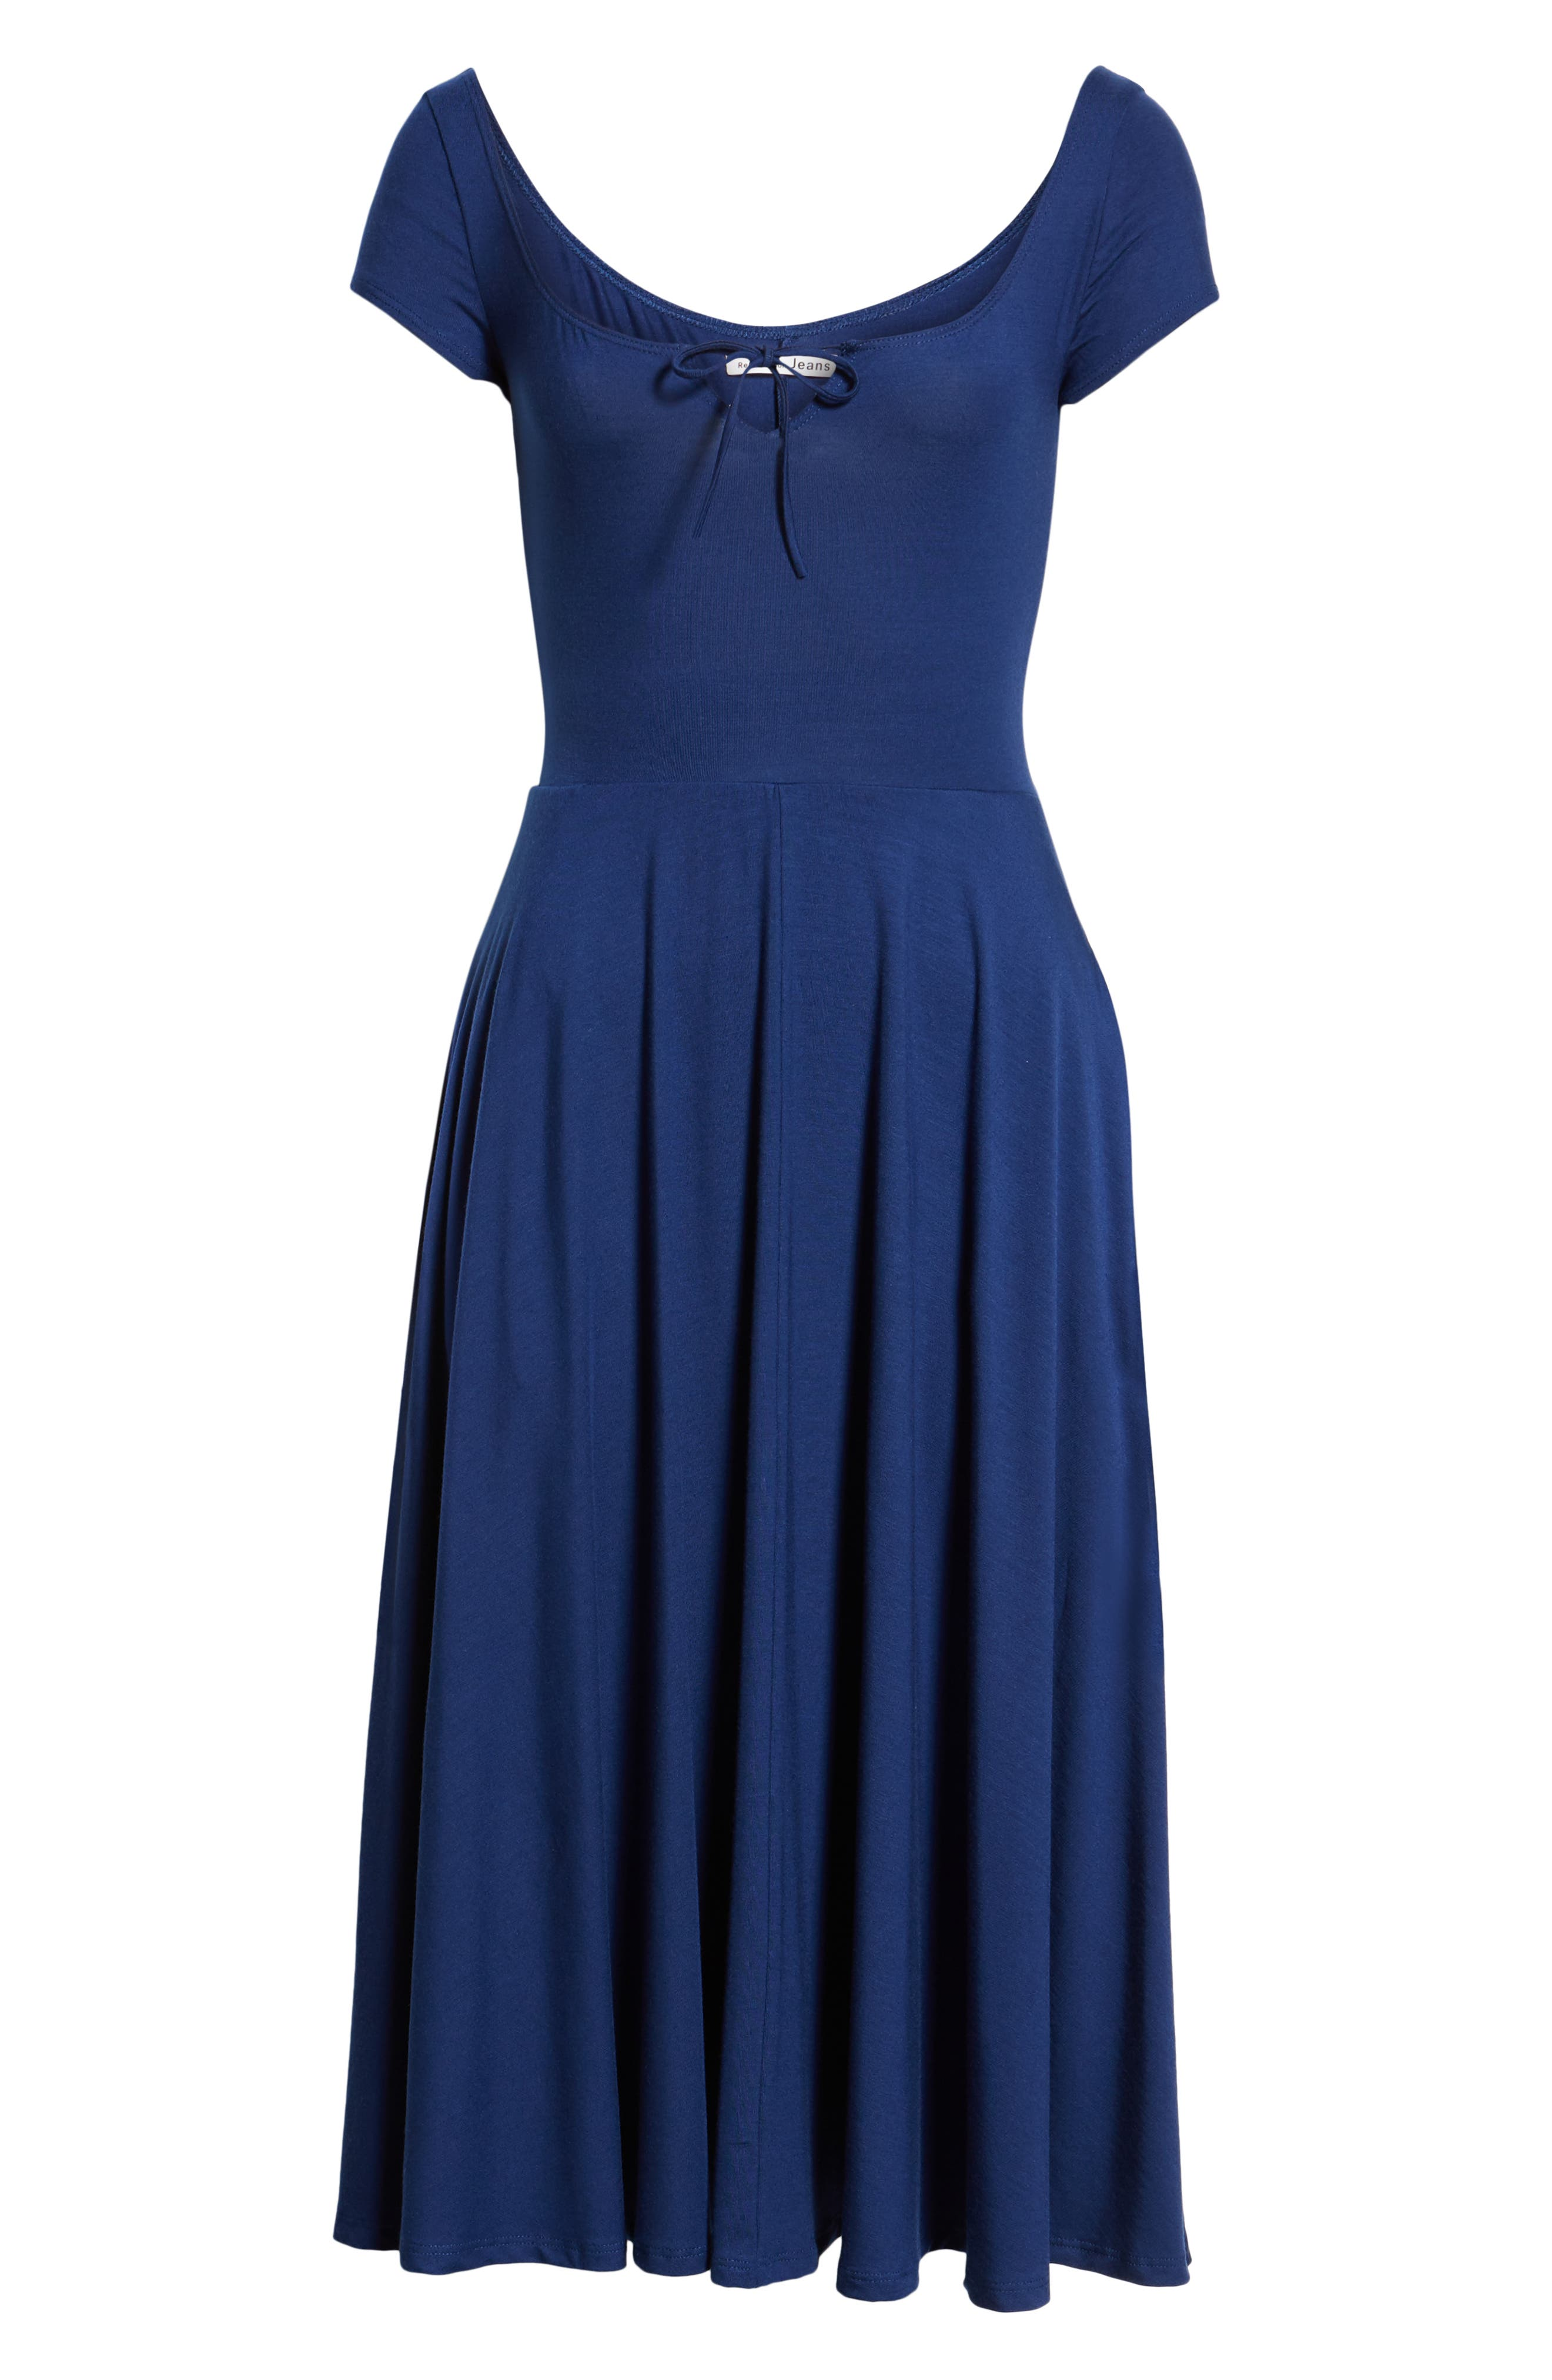 Krista Dress,                             Alternate thumbnail 6, color,                             NAVY